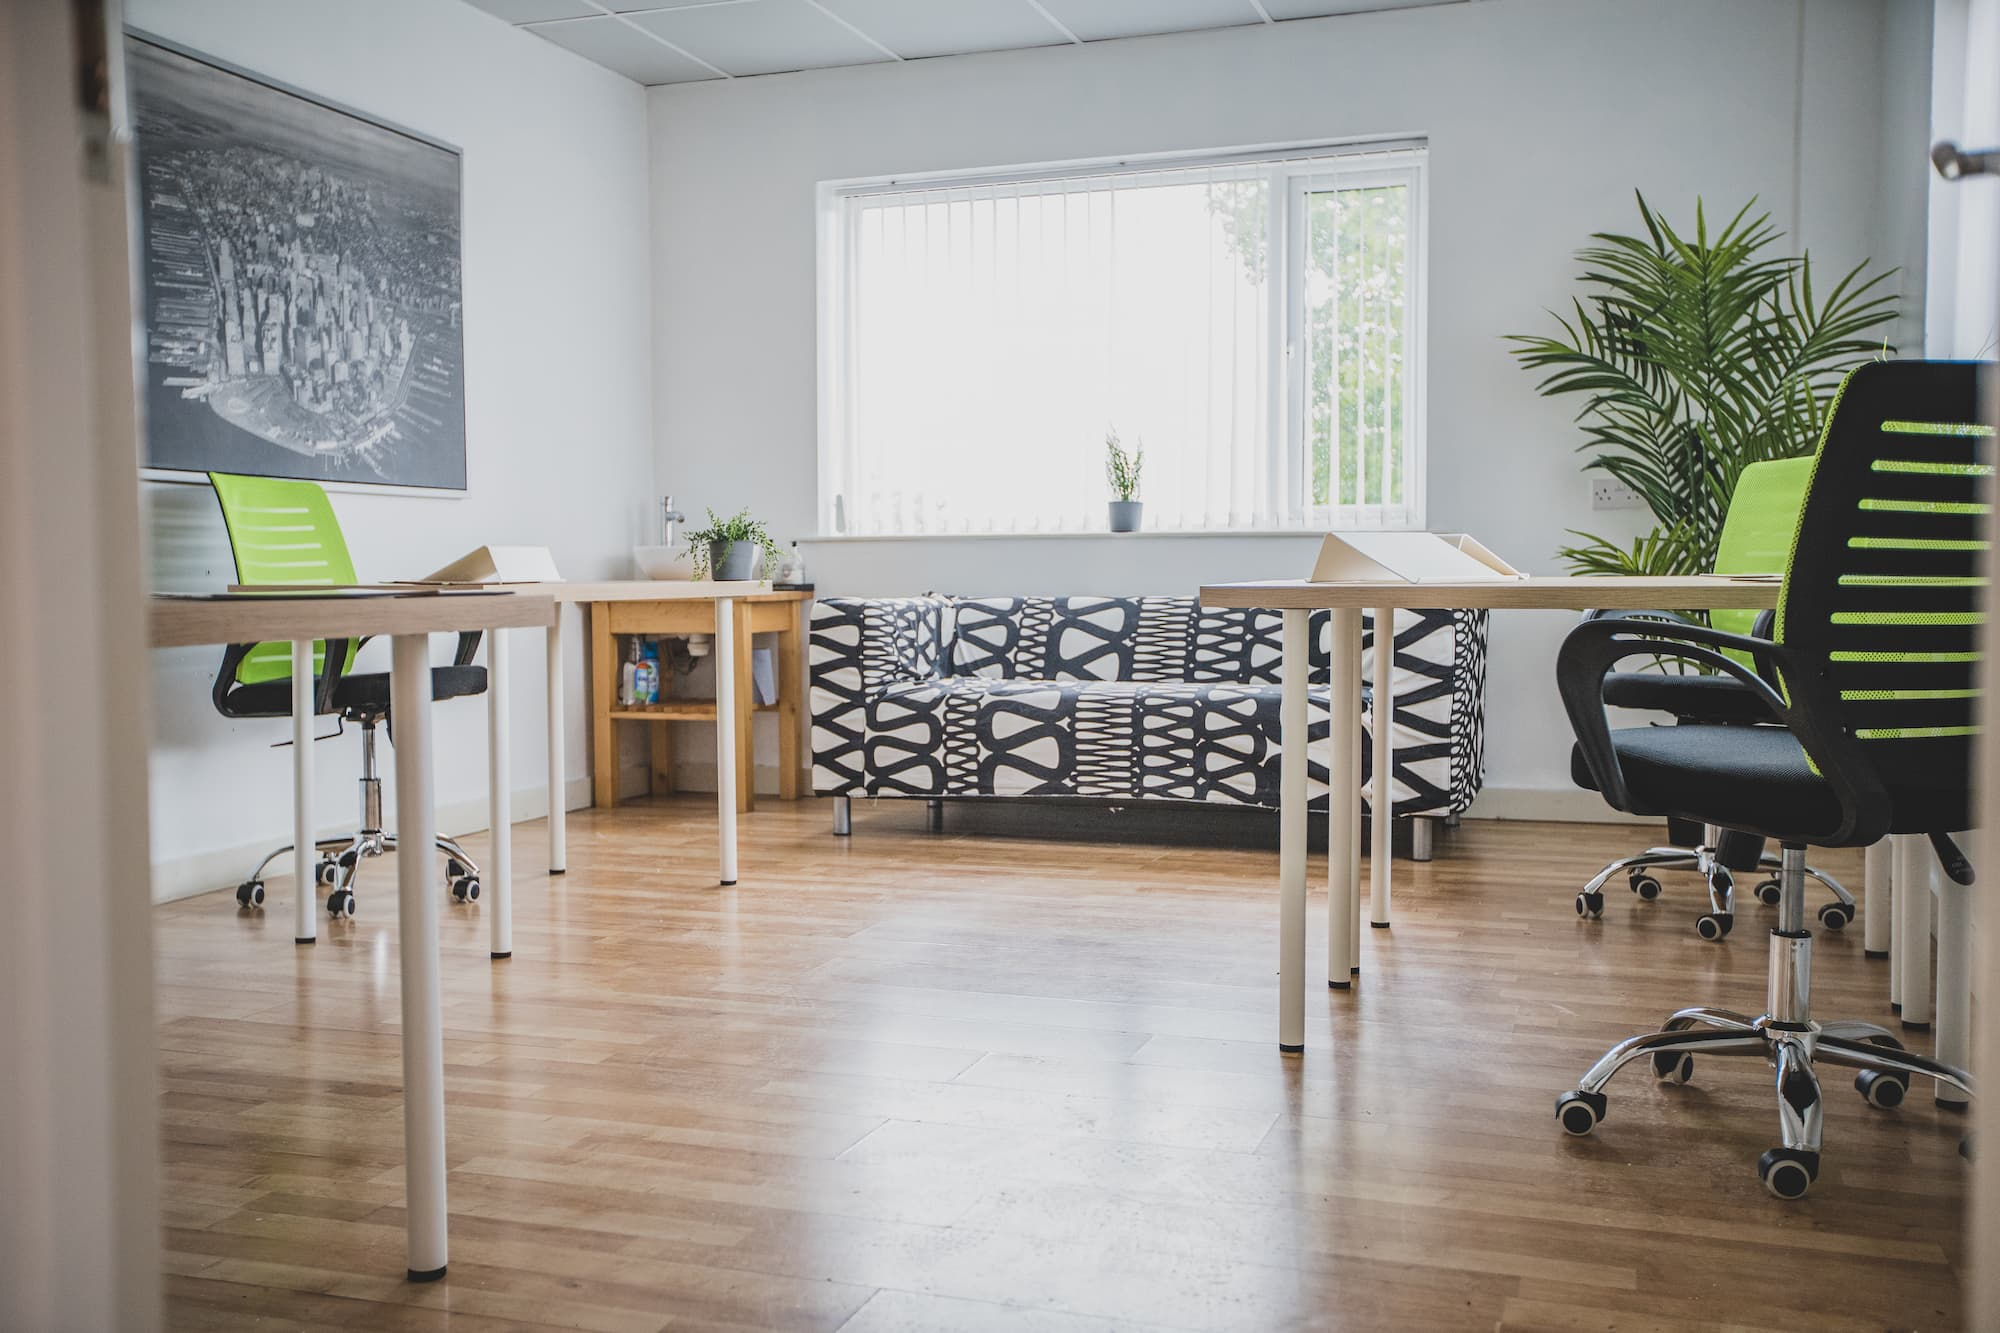 A workspace with a sofa and three work desks with swivel chairs.